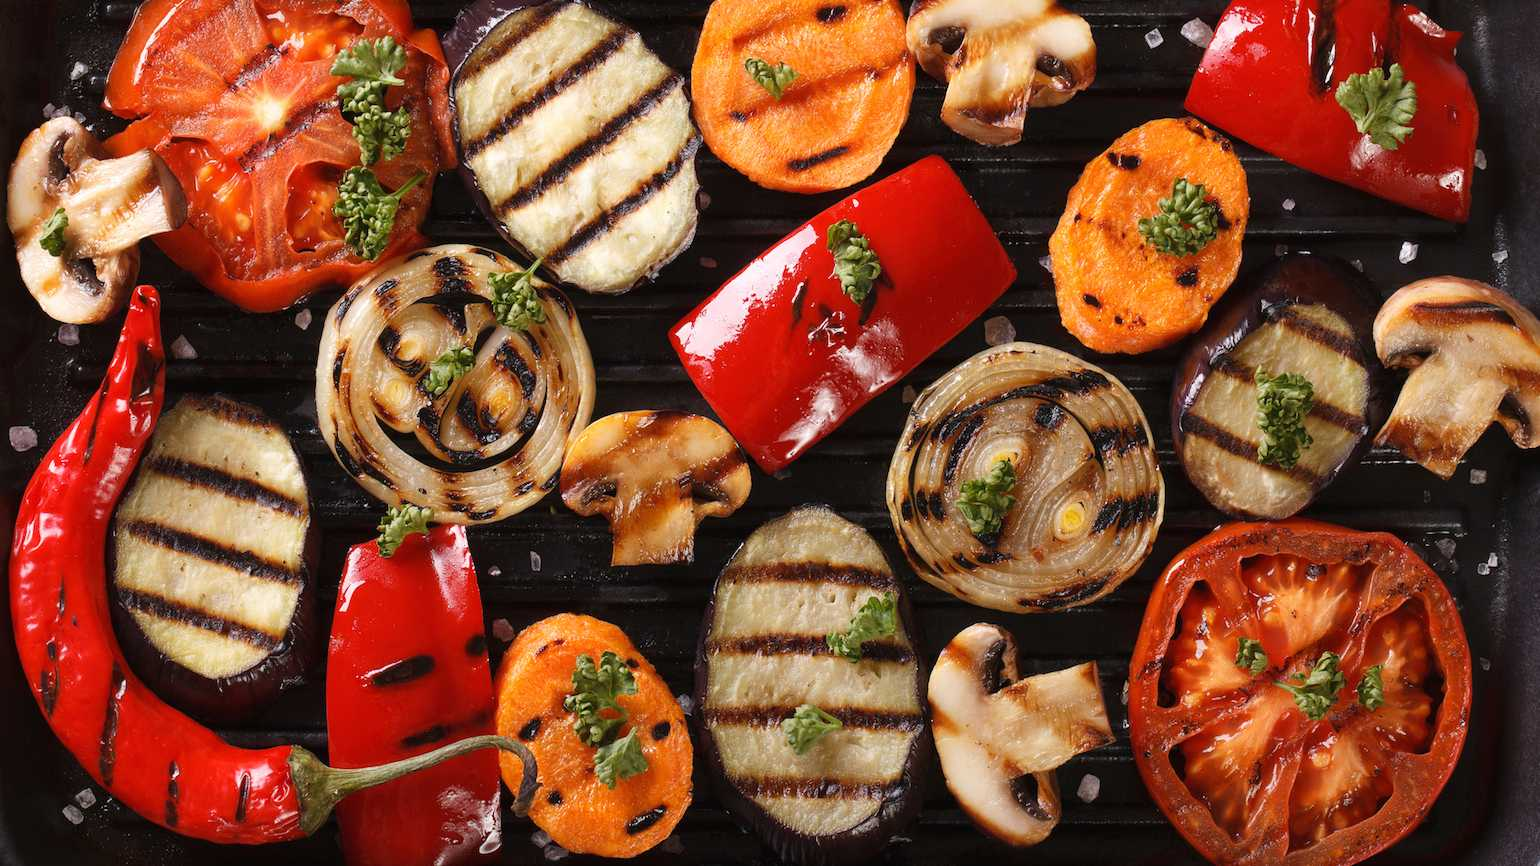 How to make fresh, flavorful grilled vegetables